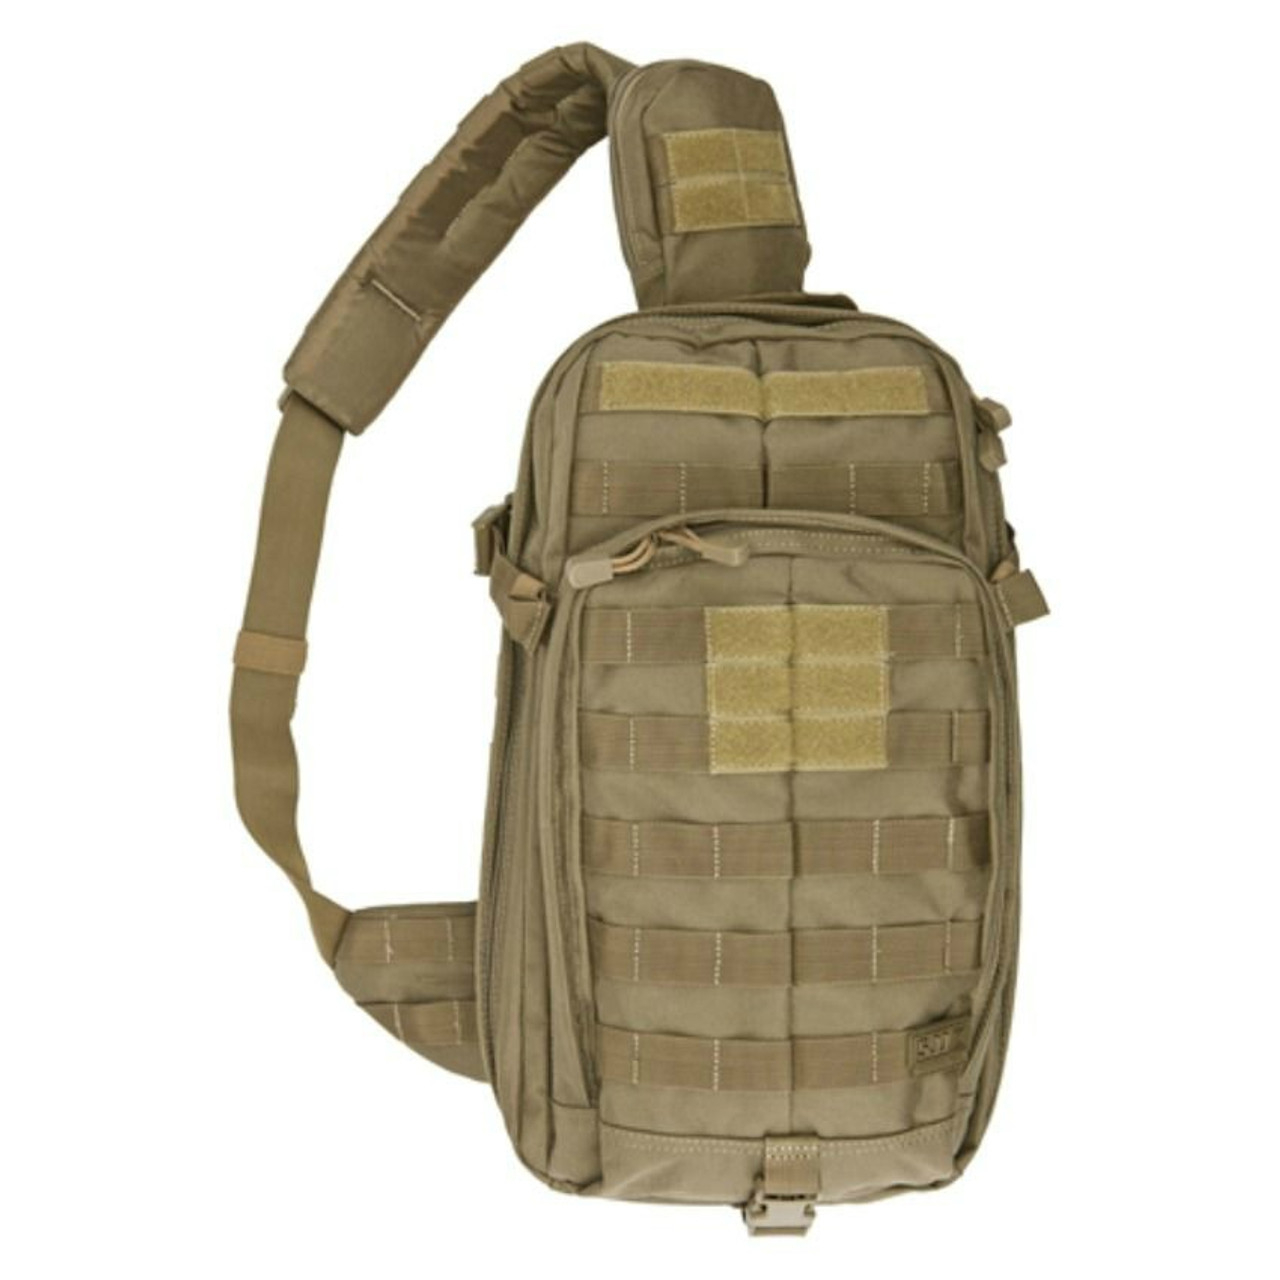 5.11 TACTICAL RUSH MOAB™ 10 PACK 56964 / SANDSTONE 328